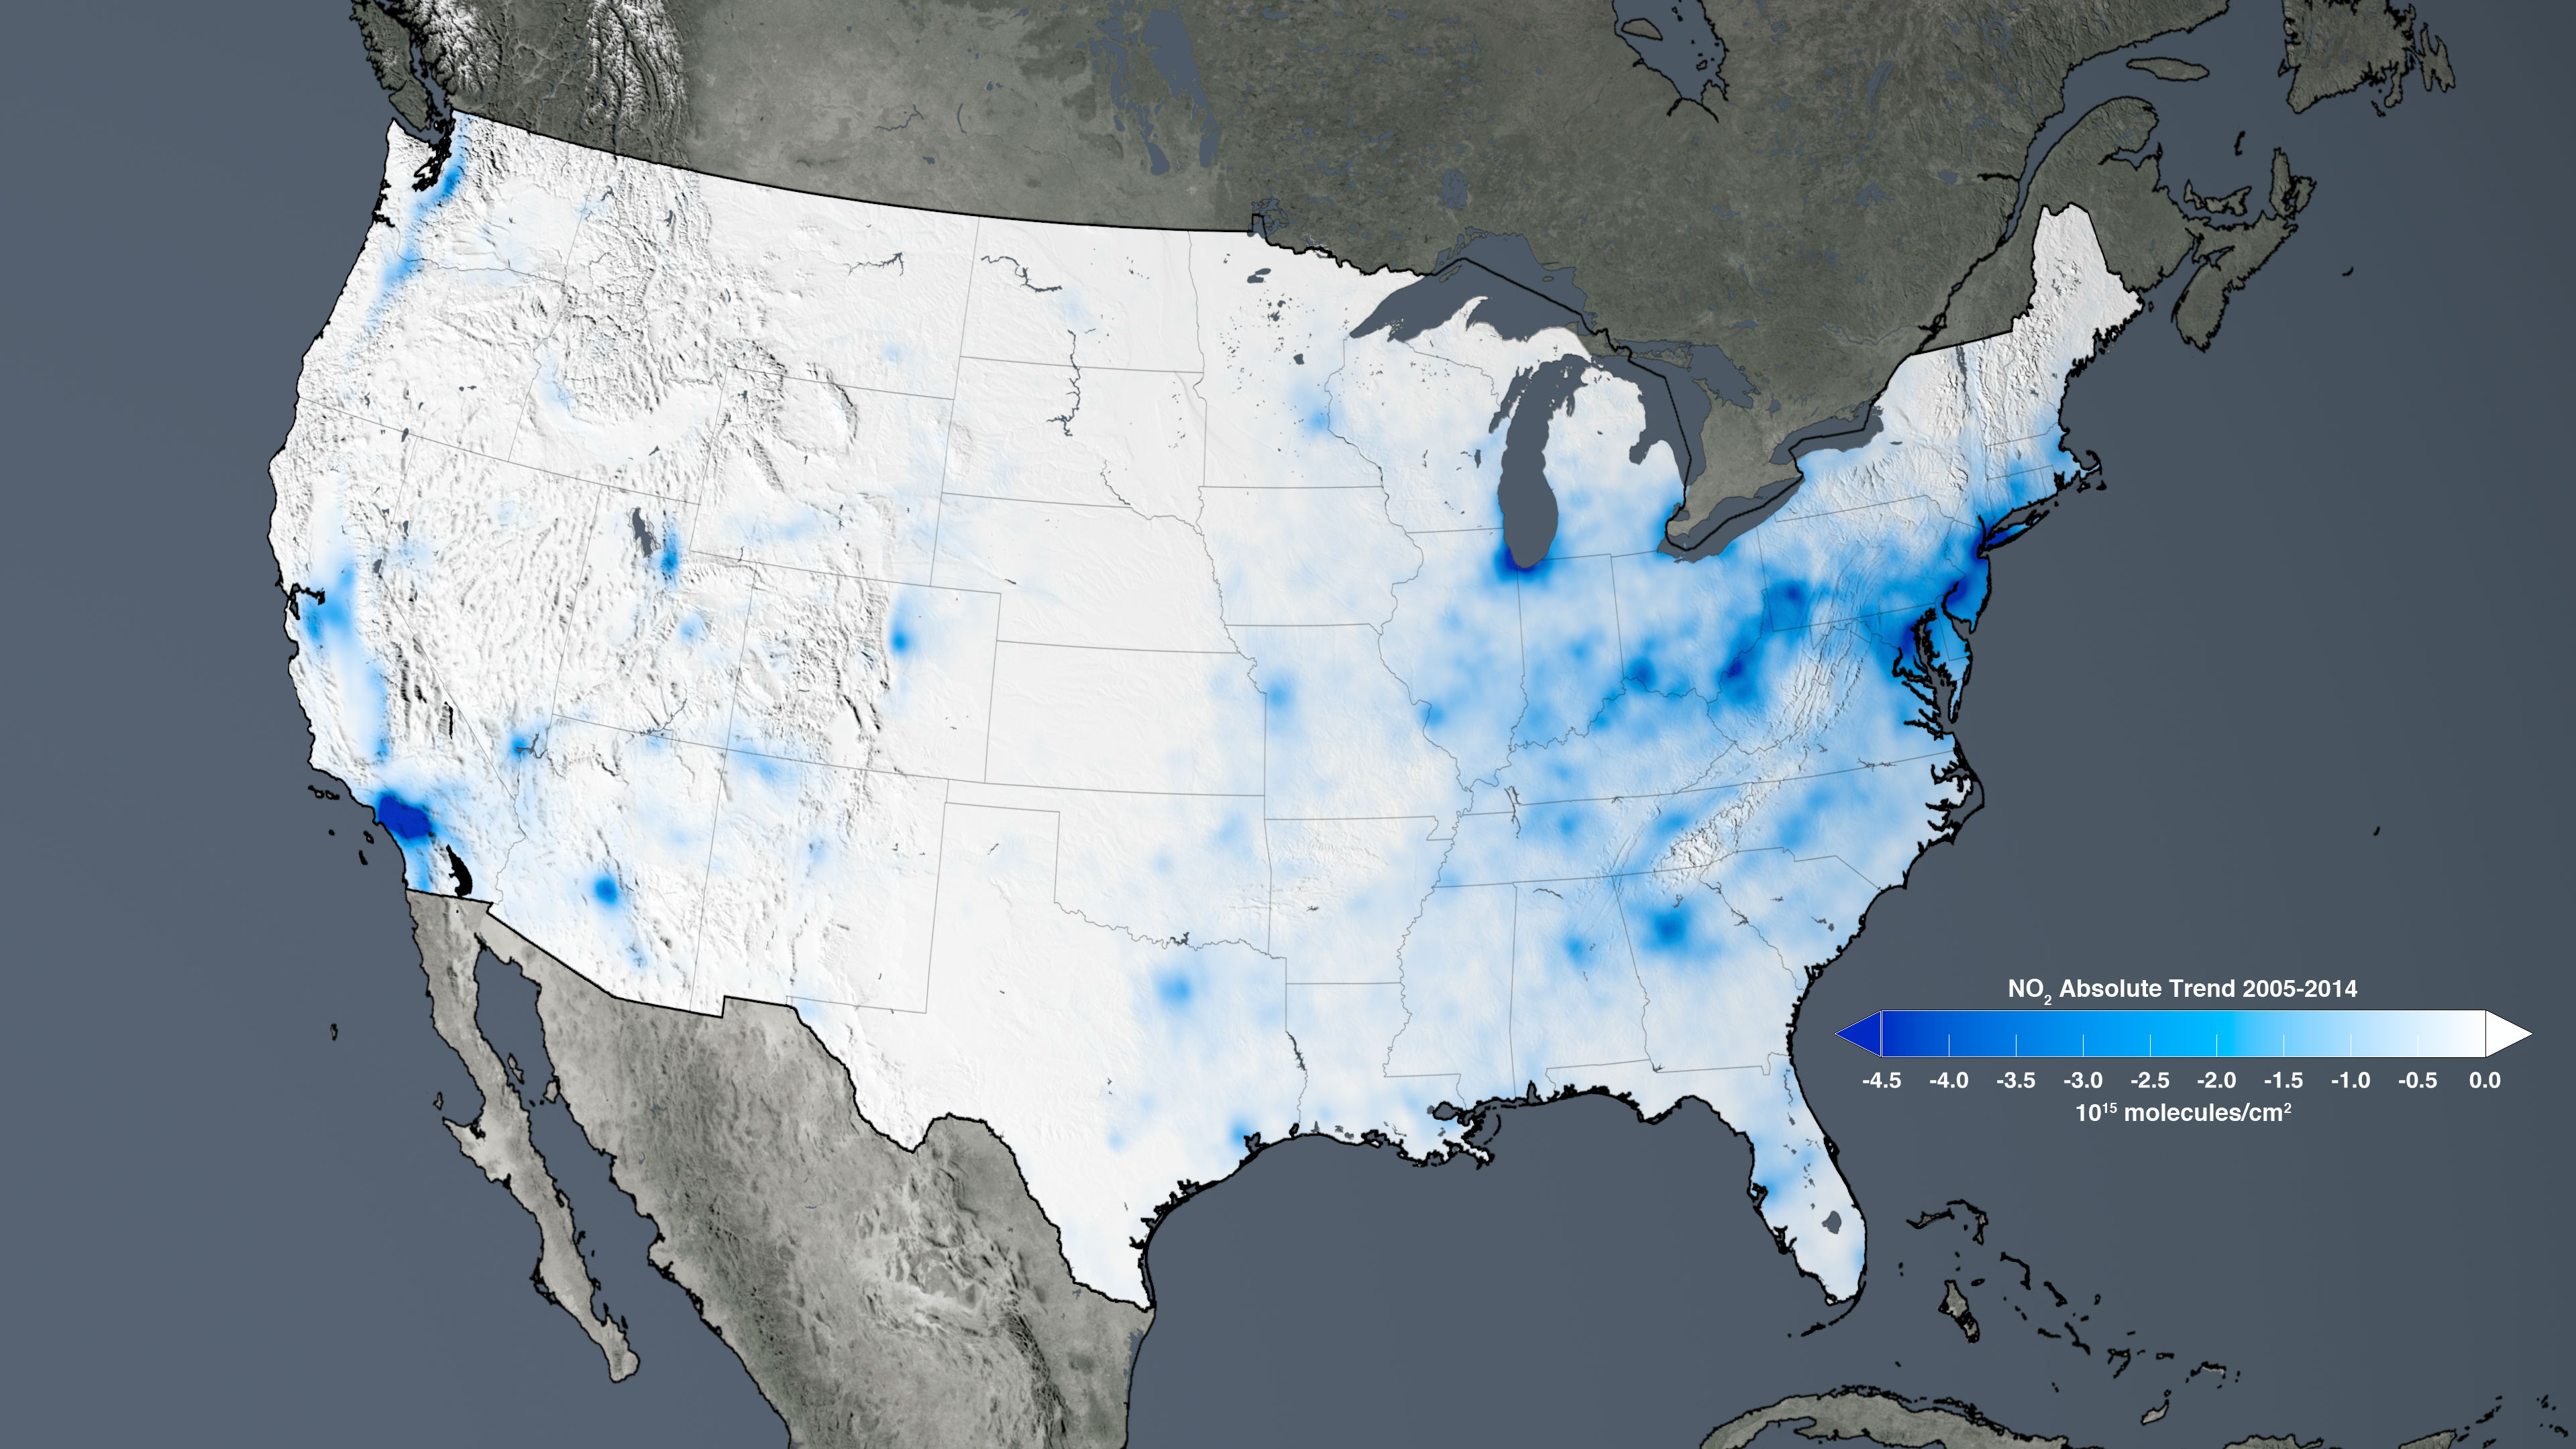 New nasa satellite maps show human fingerprint on global air quality the trend map of the united states shows the large decreases in nitrogen dioxide concentrations tied gumiabroncs